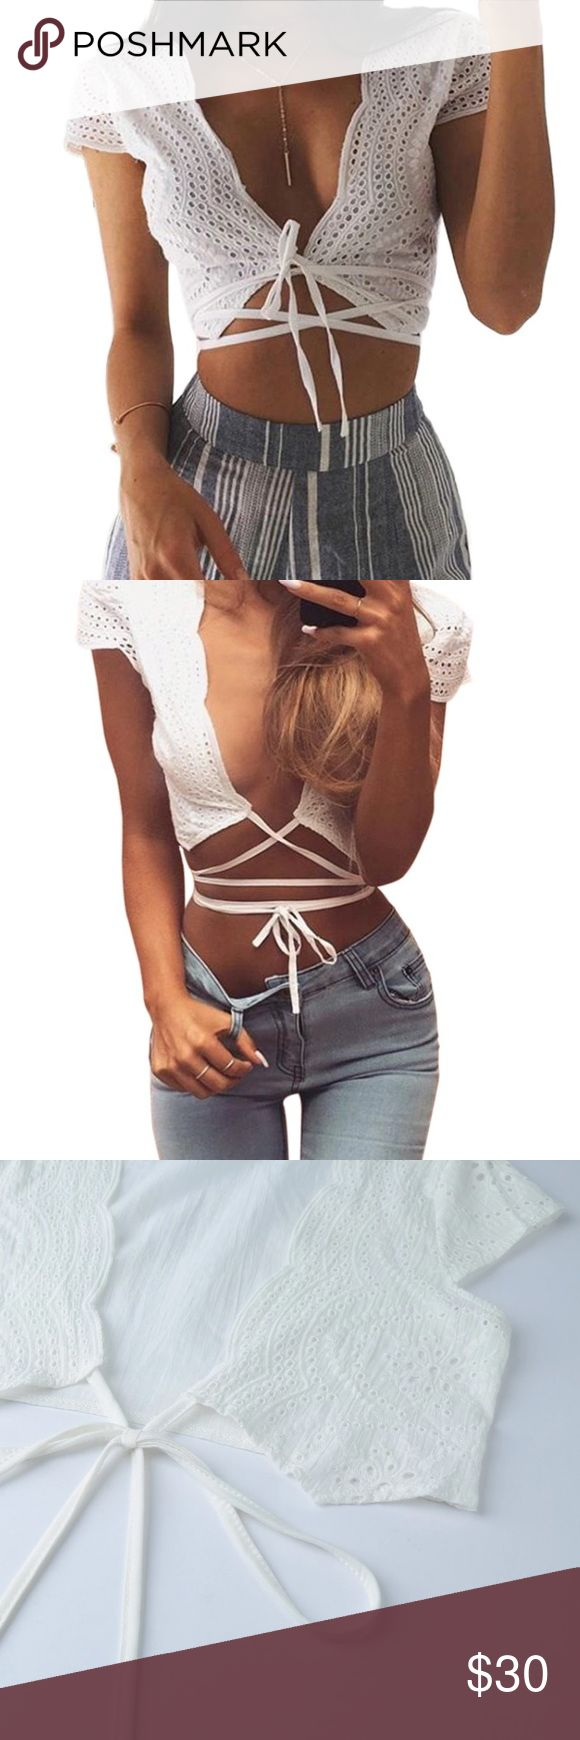 """White eyelet tie around body crop top String is 62"""" long so you can tie it around however you'd like.  Offers will be considered or countered with the lowest price.  Brand new!  Comfortable!🦋 Not Free people! Boutique. Free People Tops Crop Tops"""